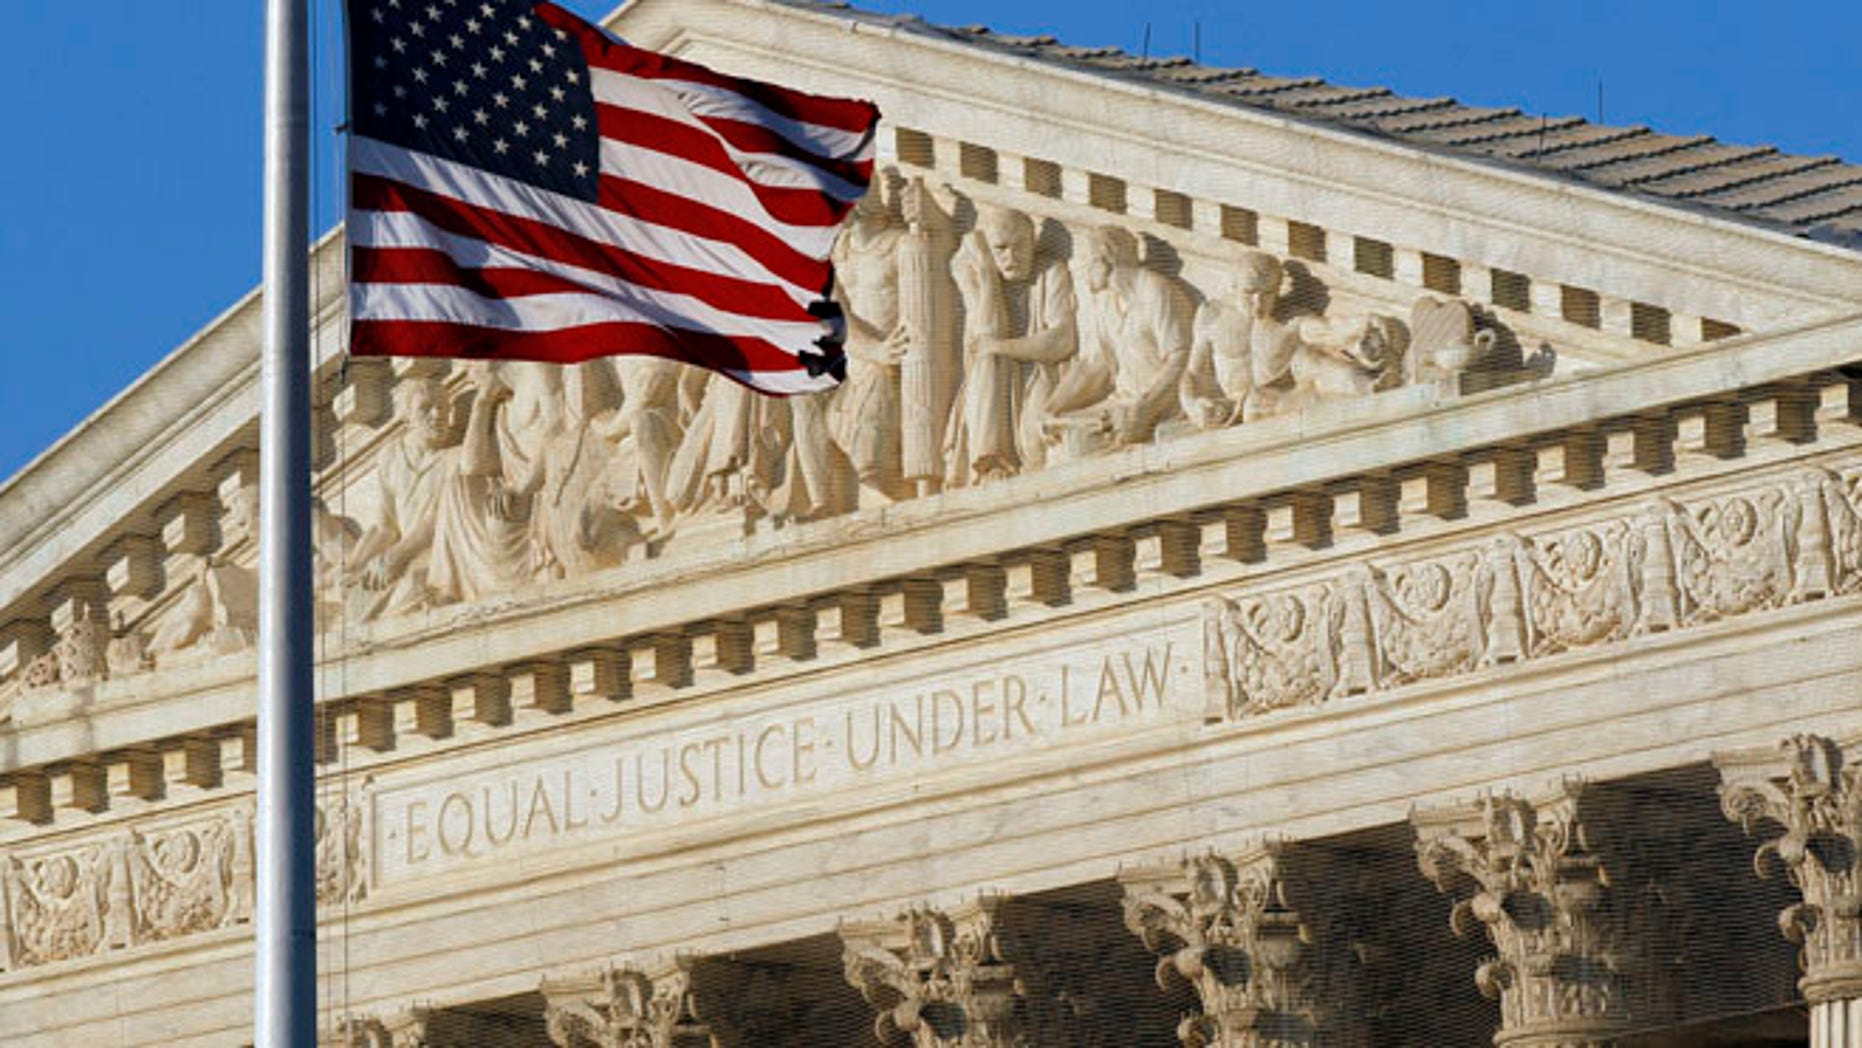 This June 27, 2012, file photo shows an American flag in front of the U.S. Supreme Court in Washington.